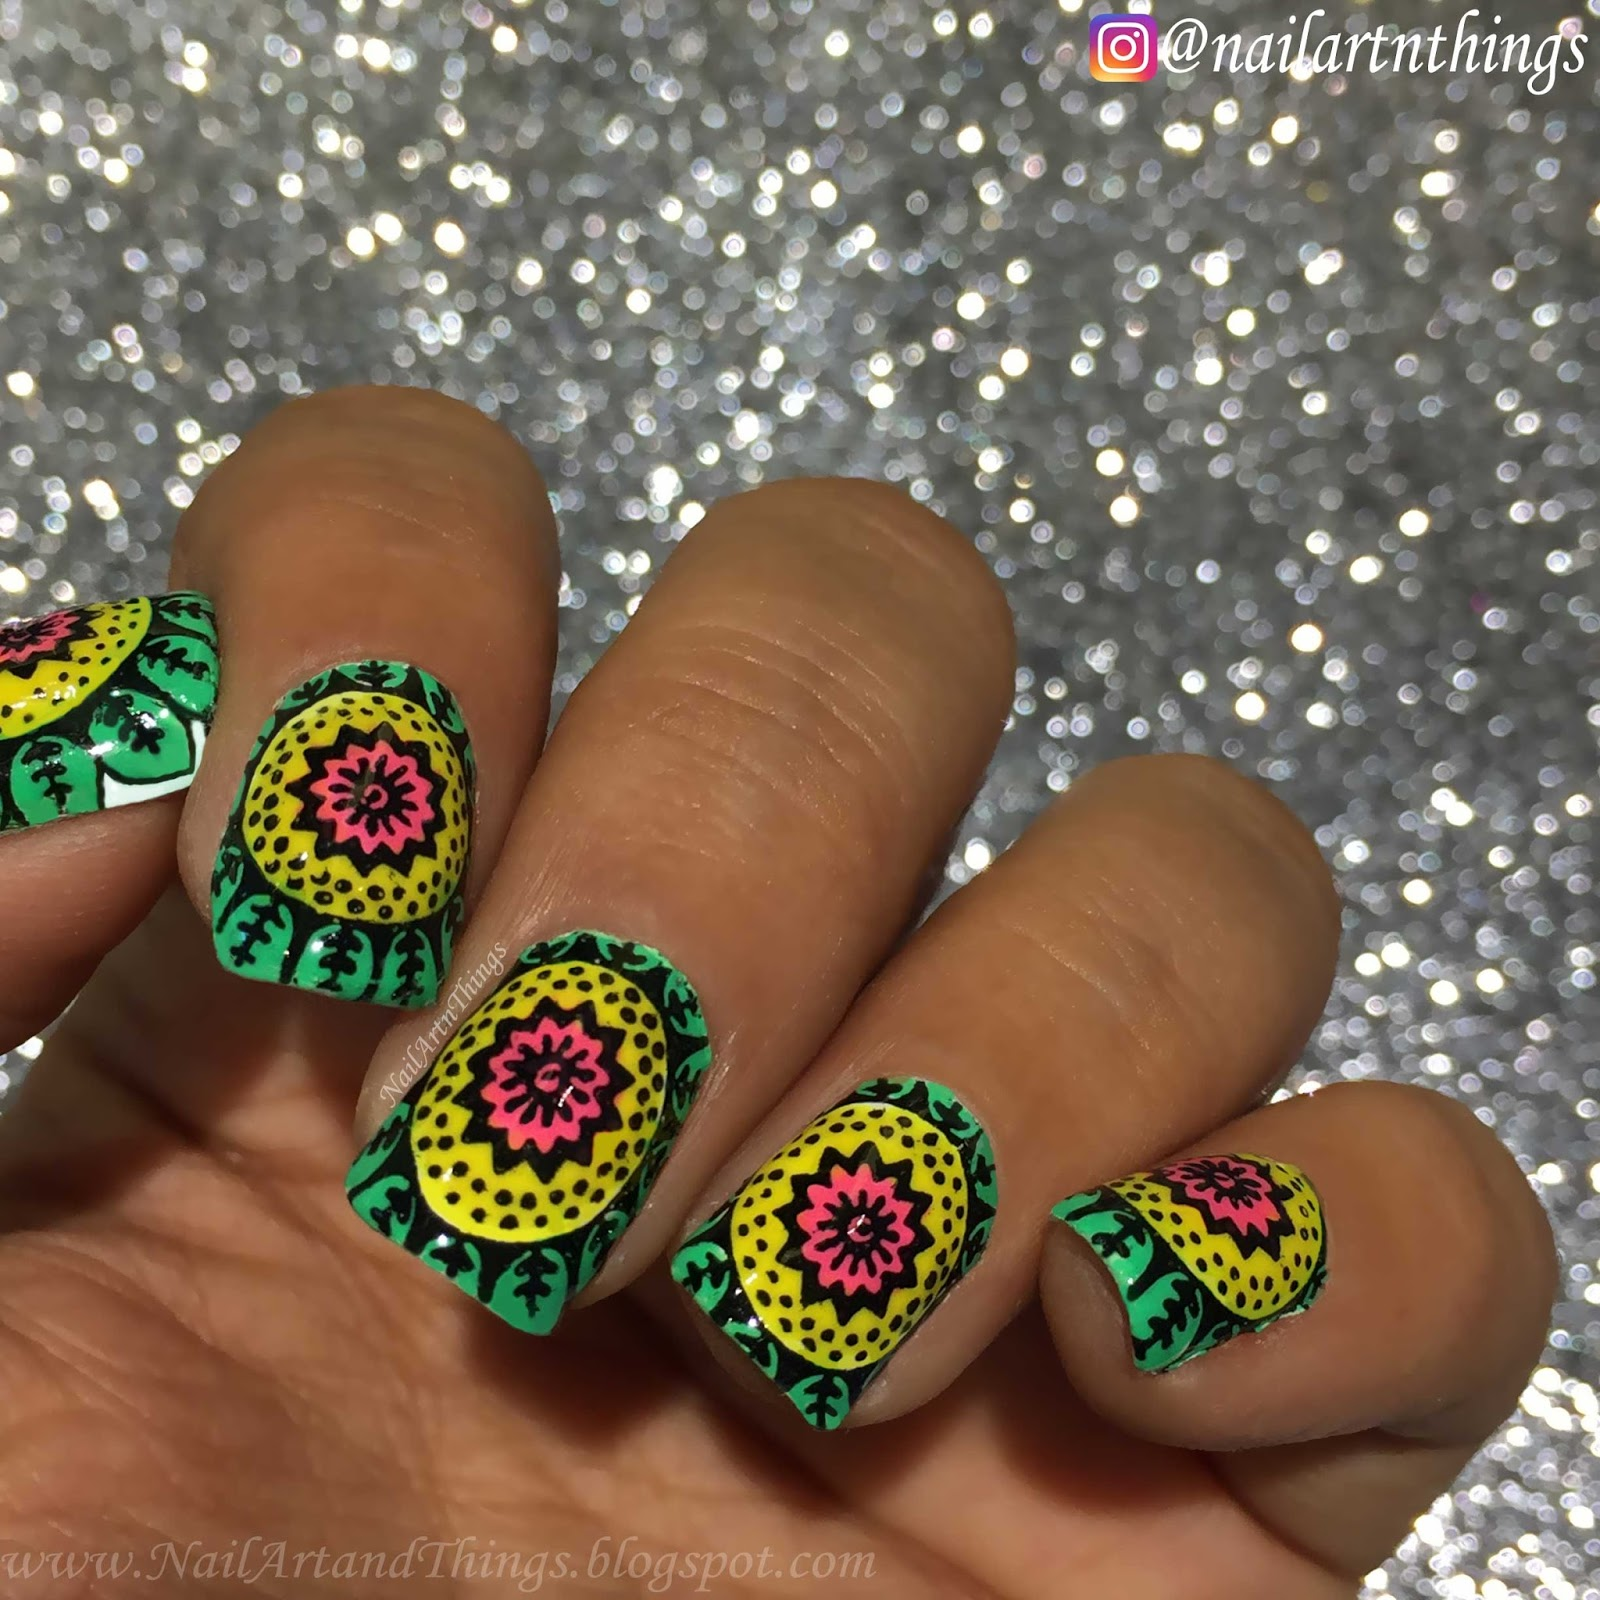 NailArt and Things: Mandala Nail Art with stamping decals